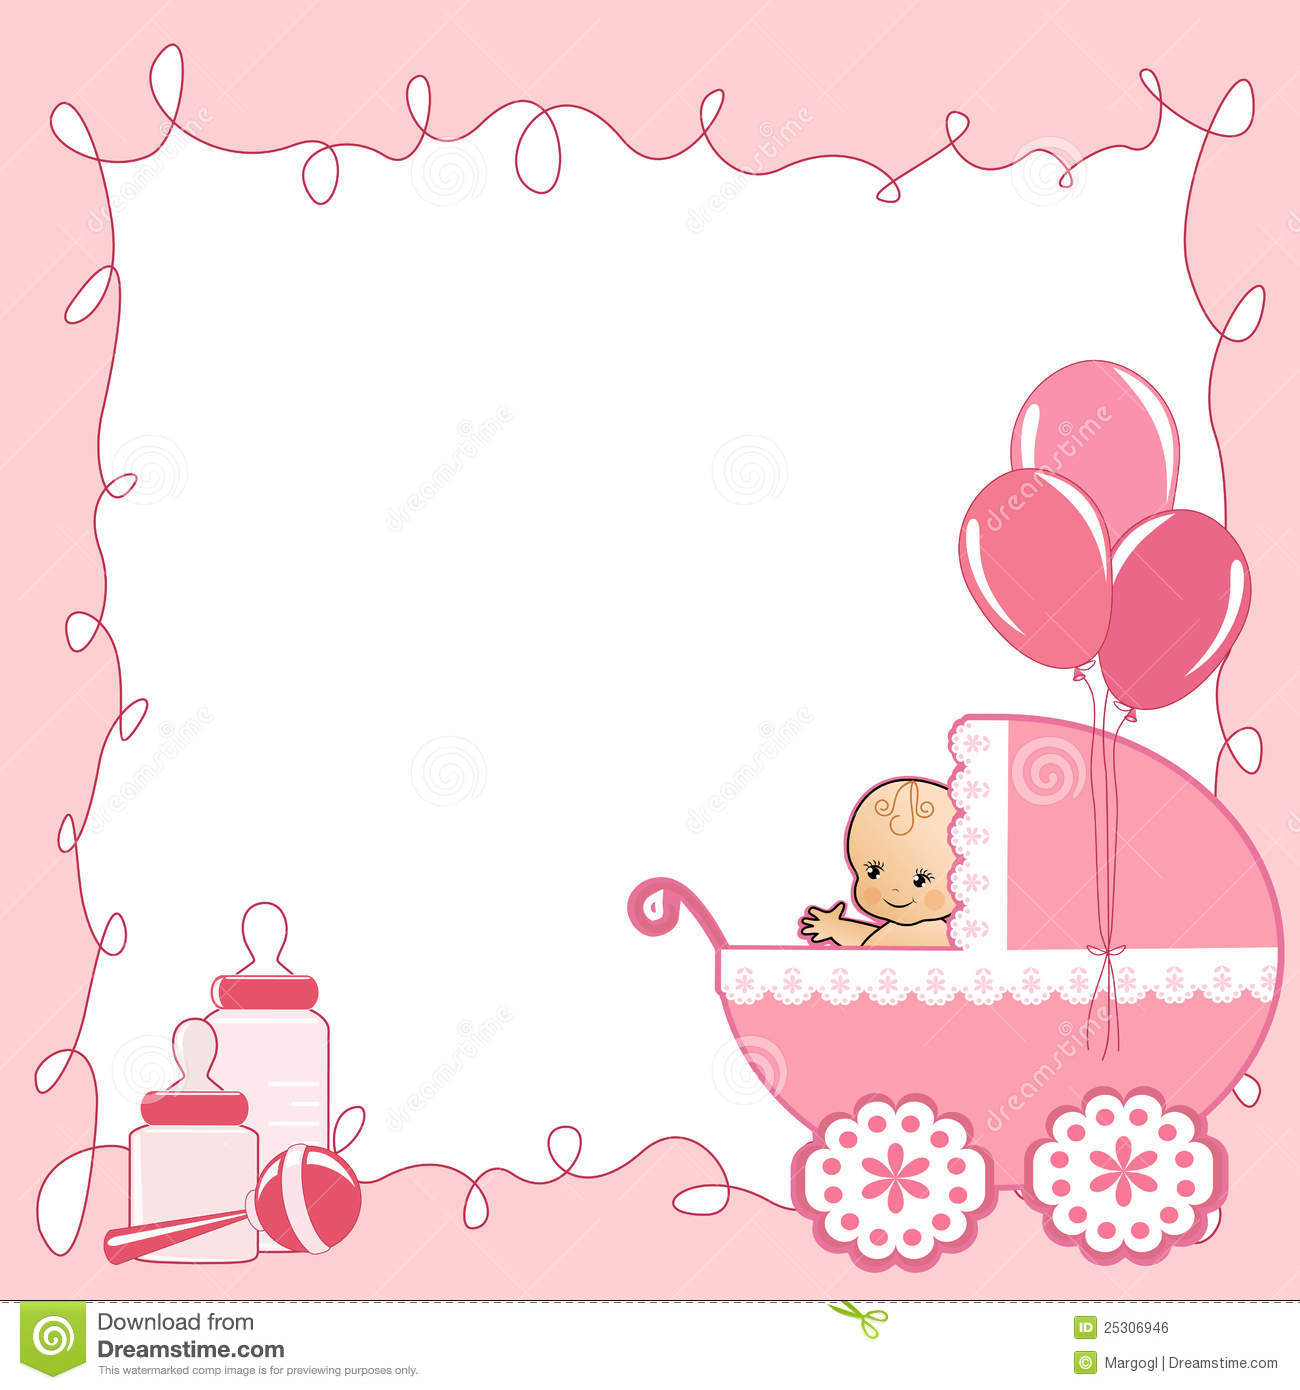 Baby card clipart 5 » Clipart Station.